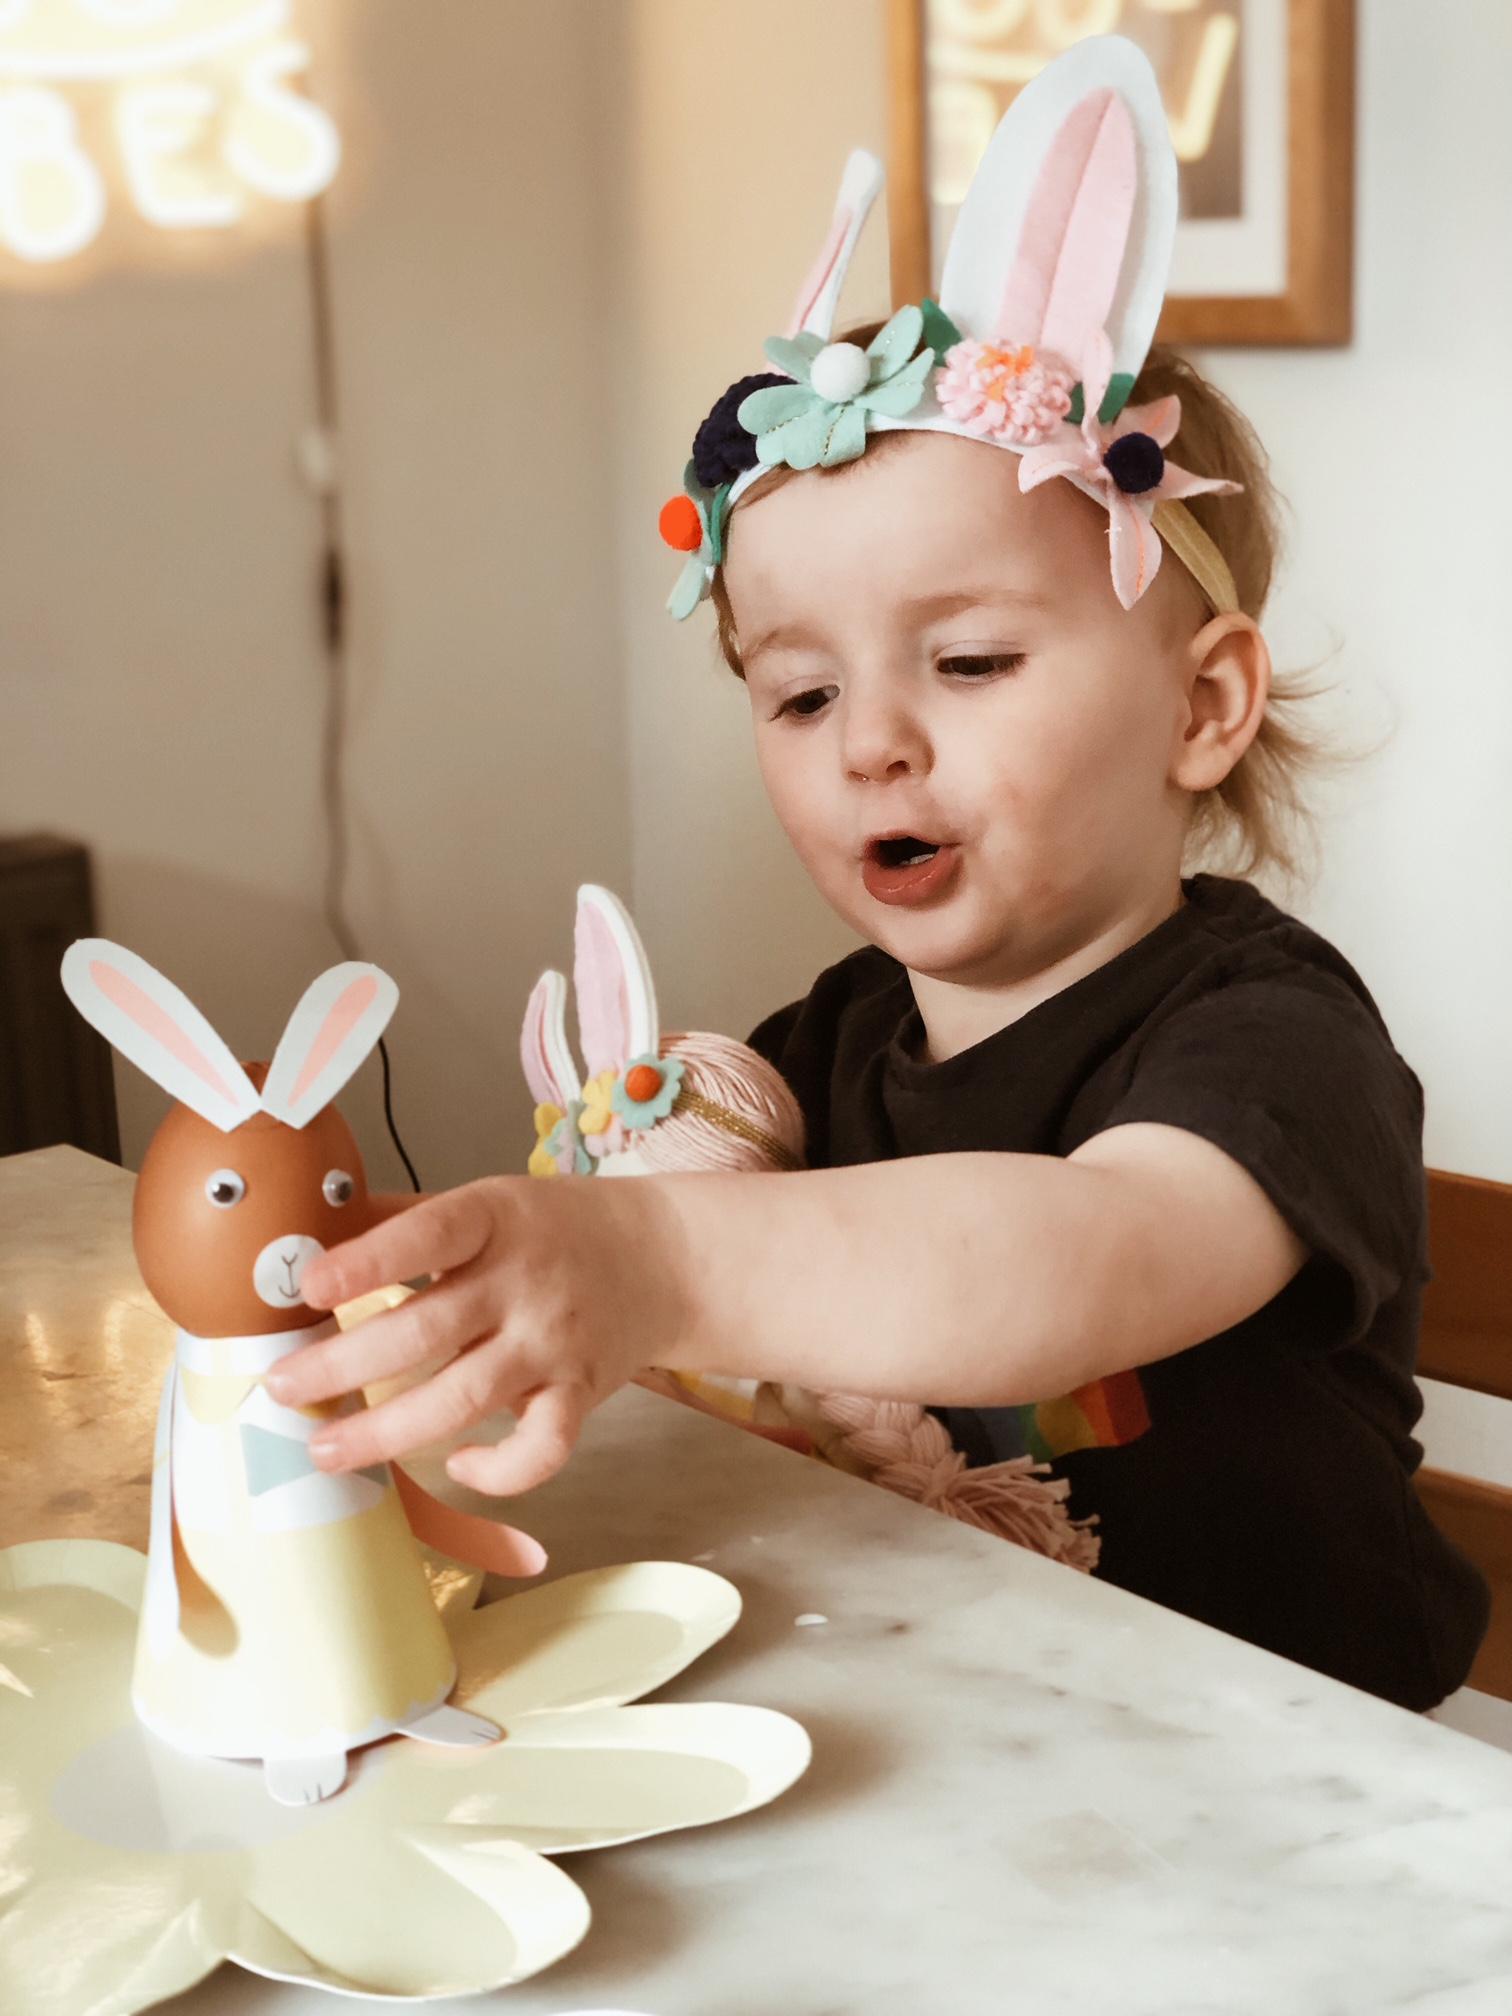 Decorating her bunny egg!